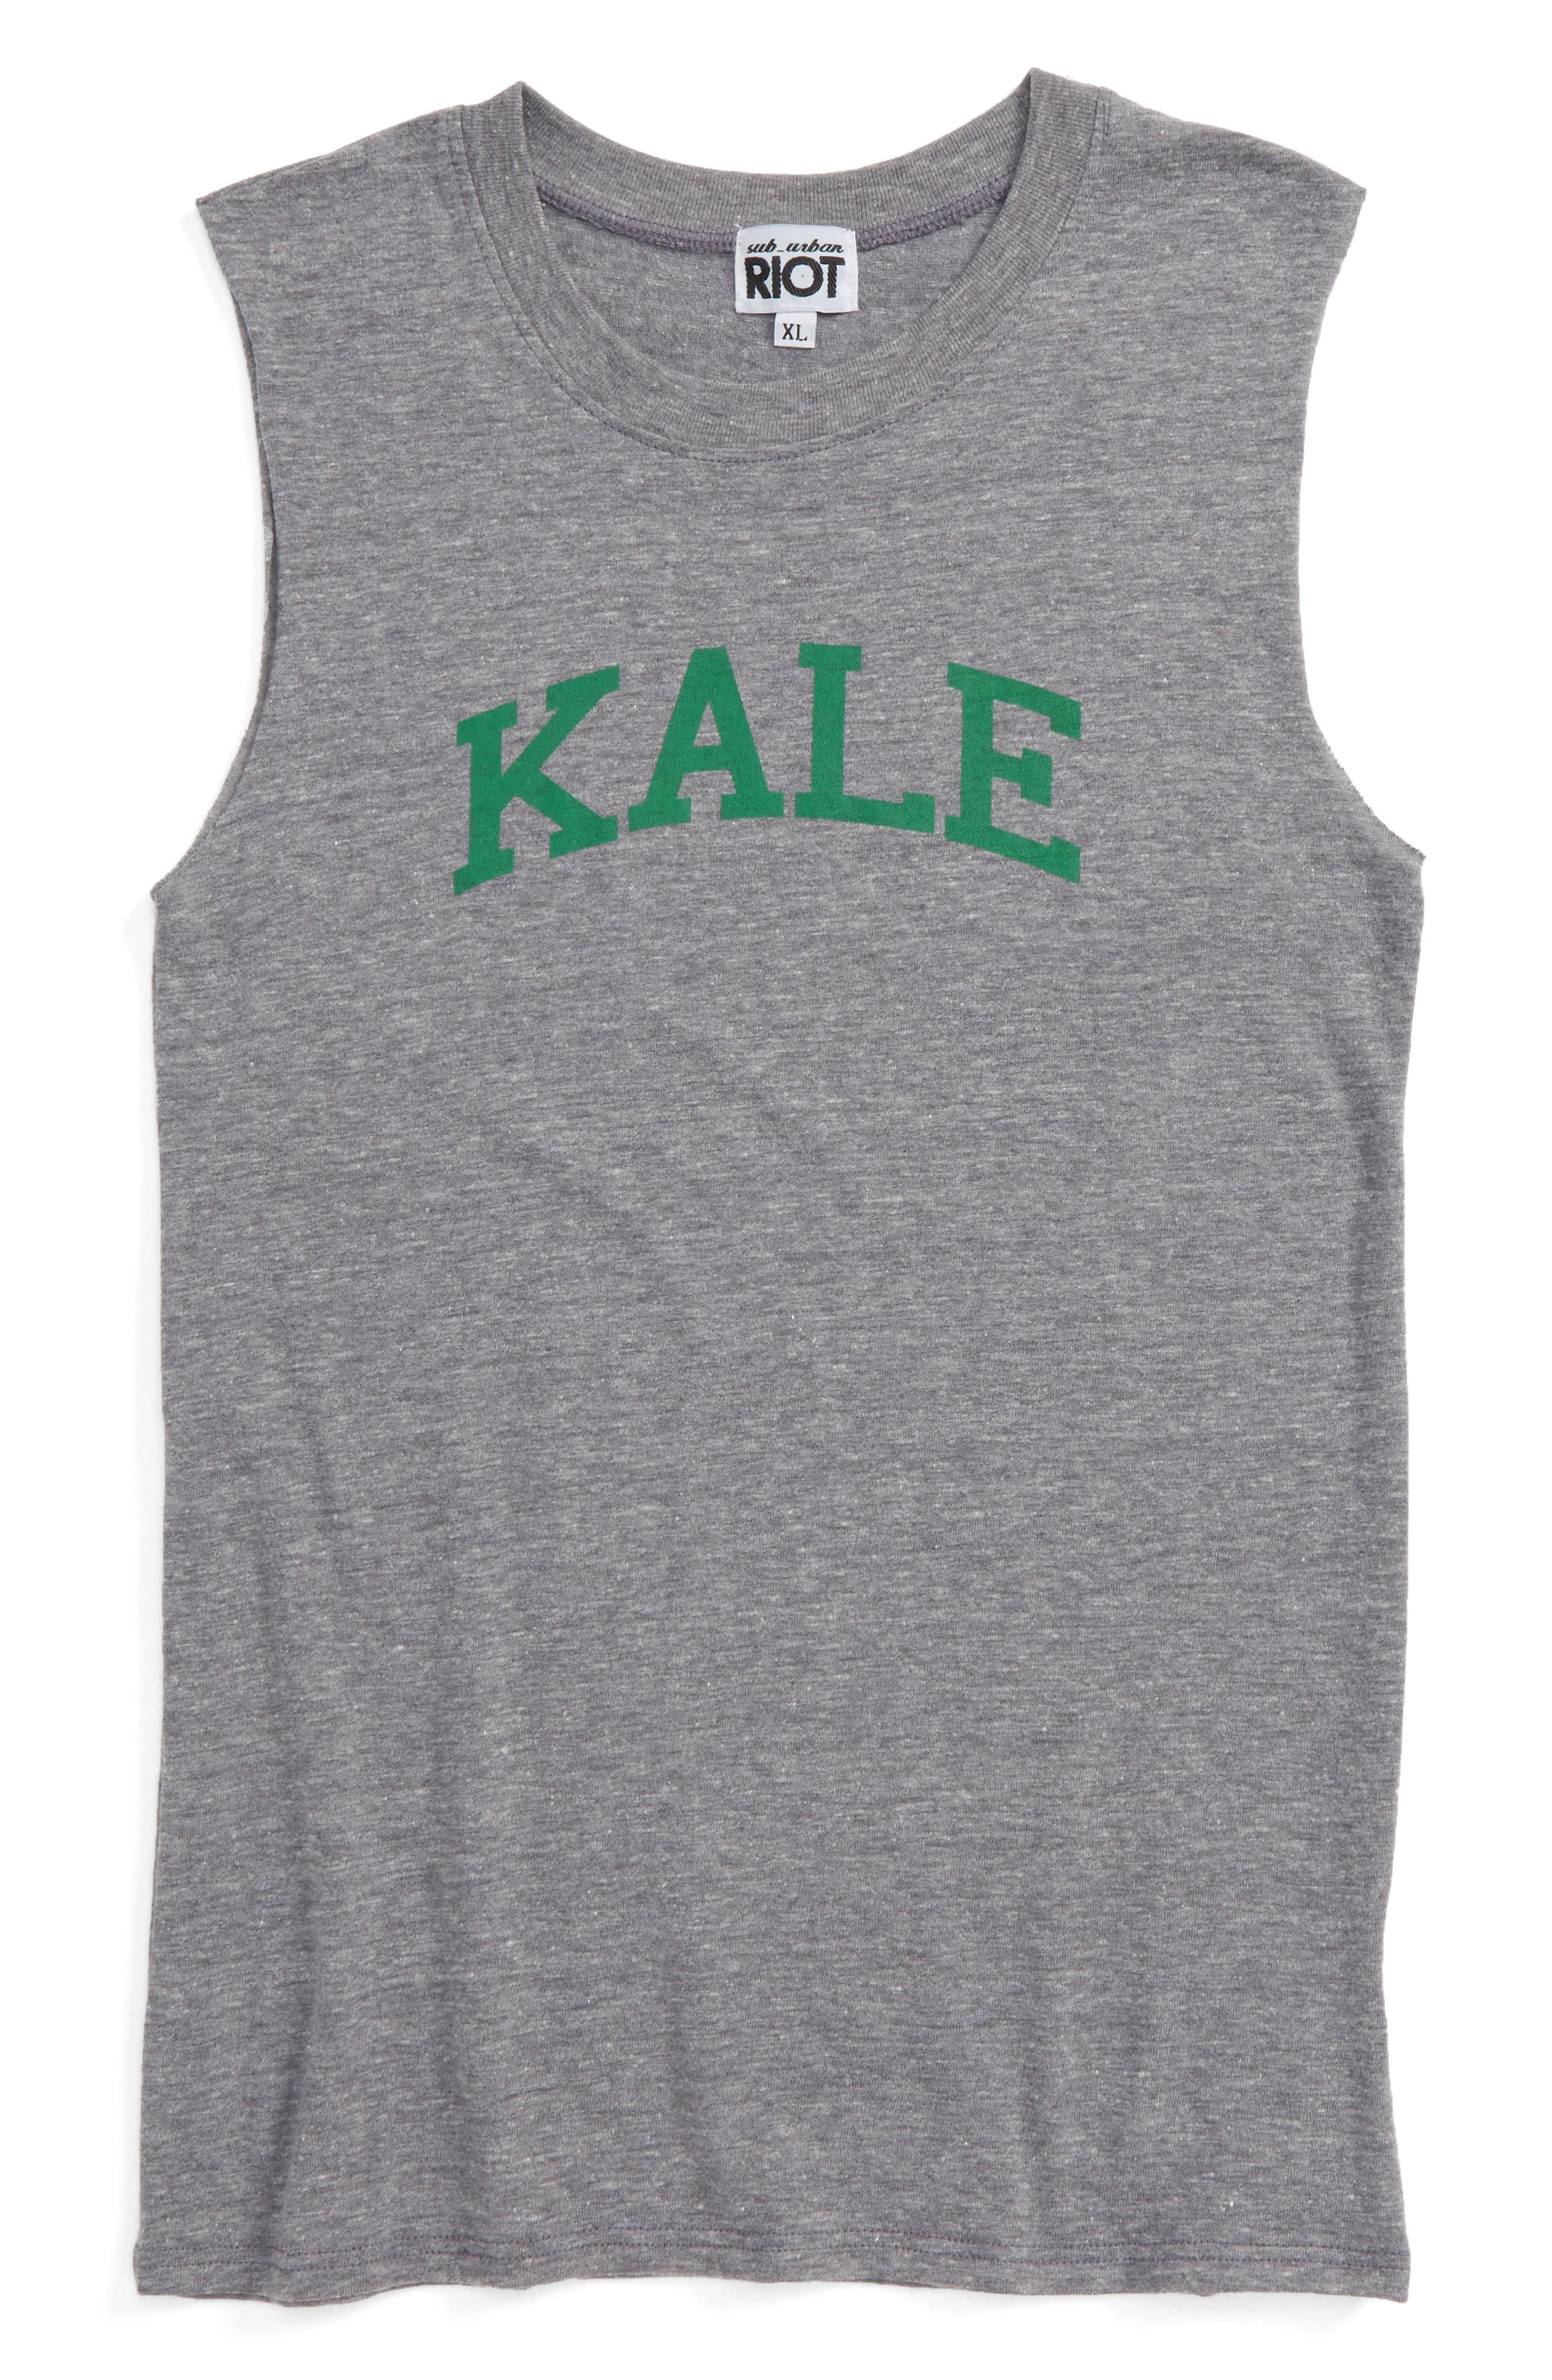 Sub_Urban Riot Kale Muscle Tee (Big Girls)